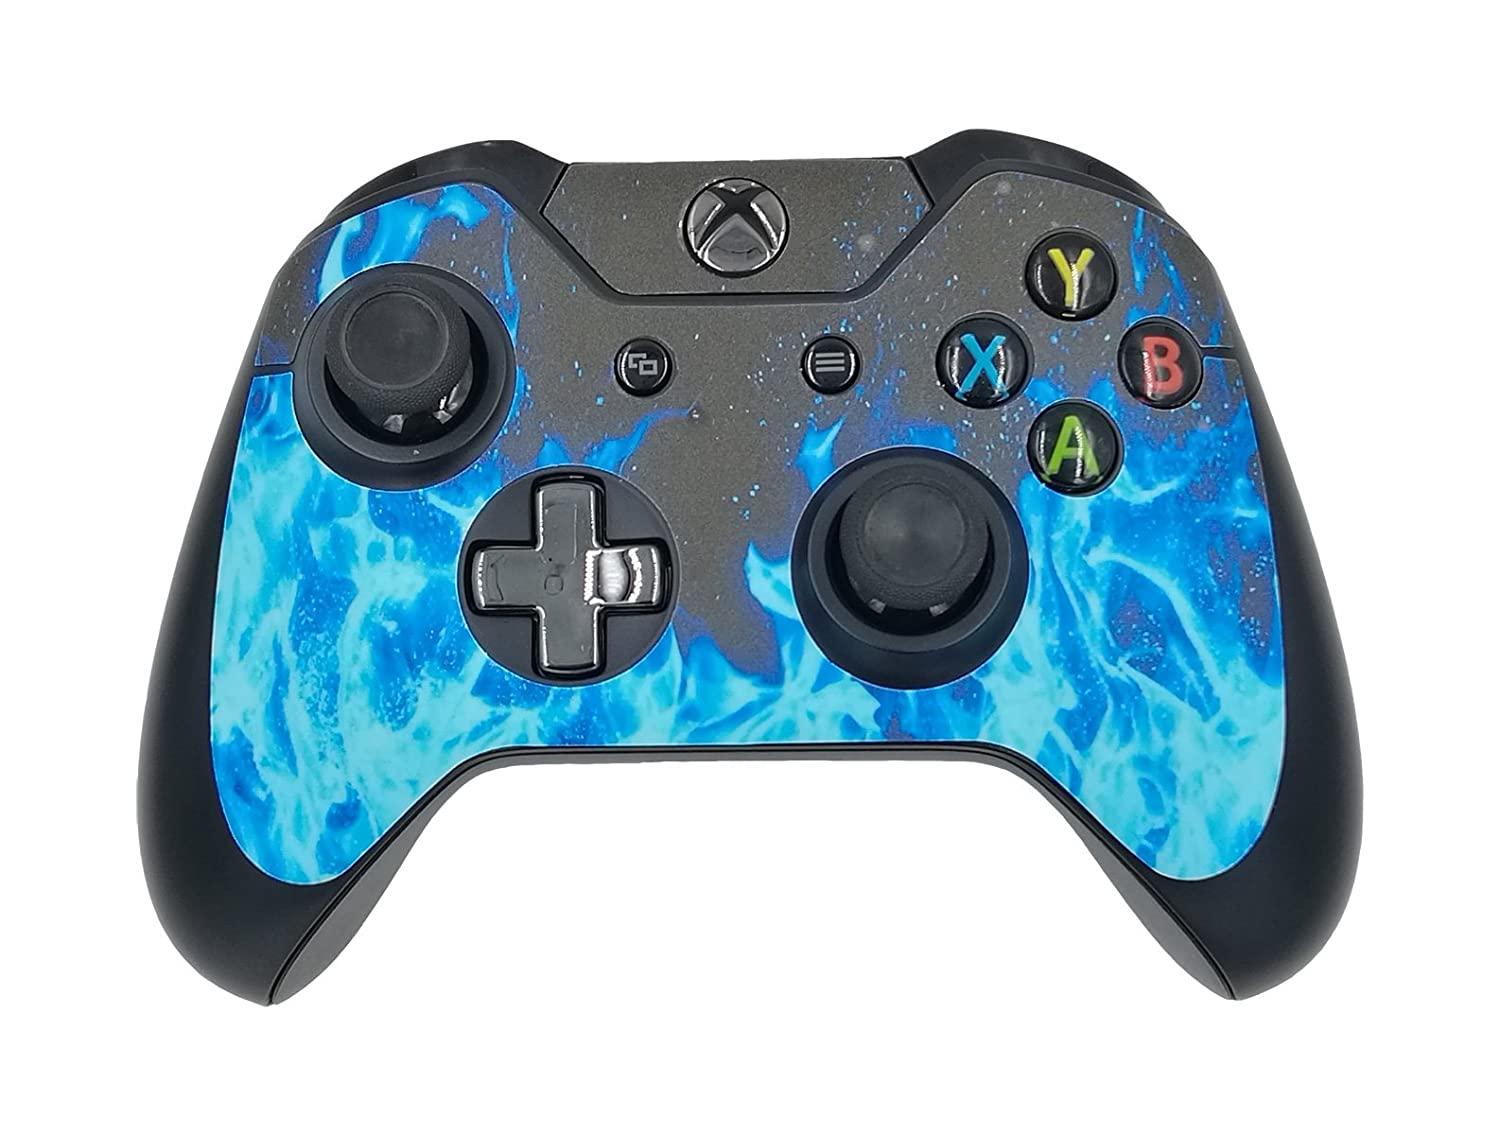 Amazon.com: SKINOWN Xbox One Controller Skin Blue Flame Blue Fire ...